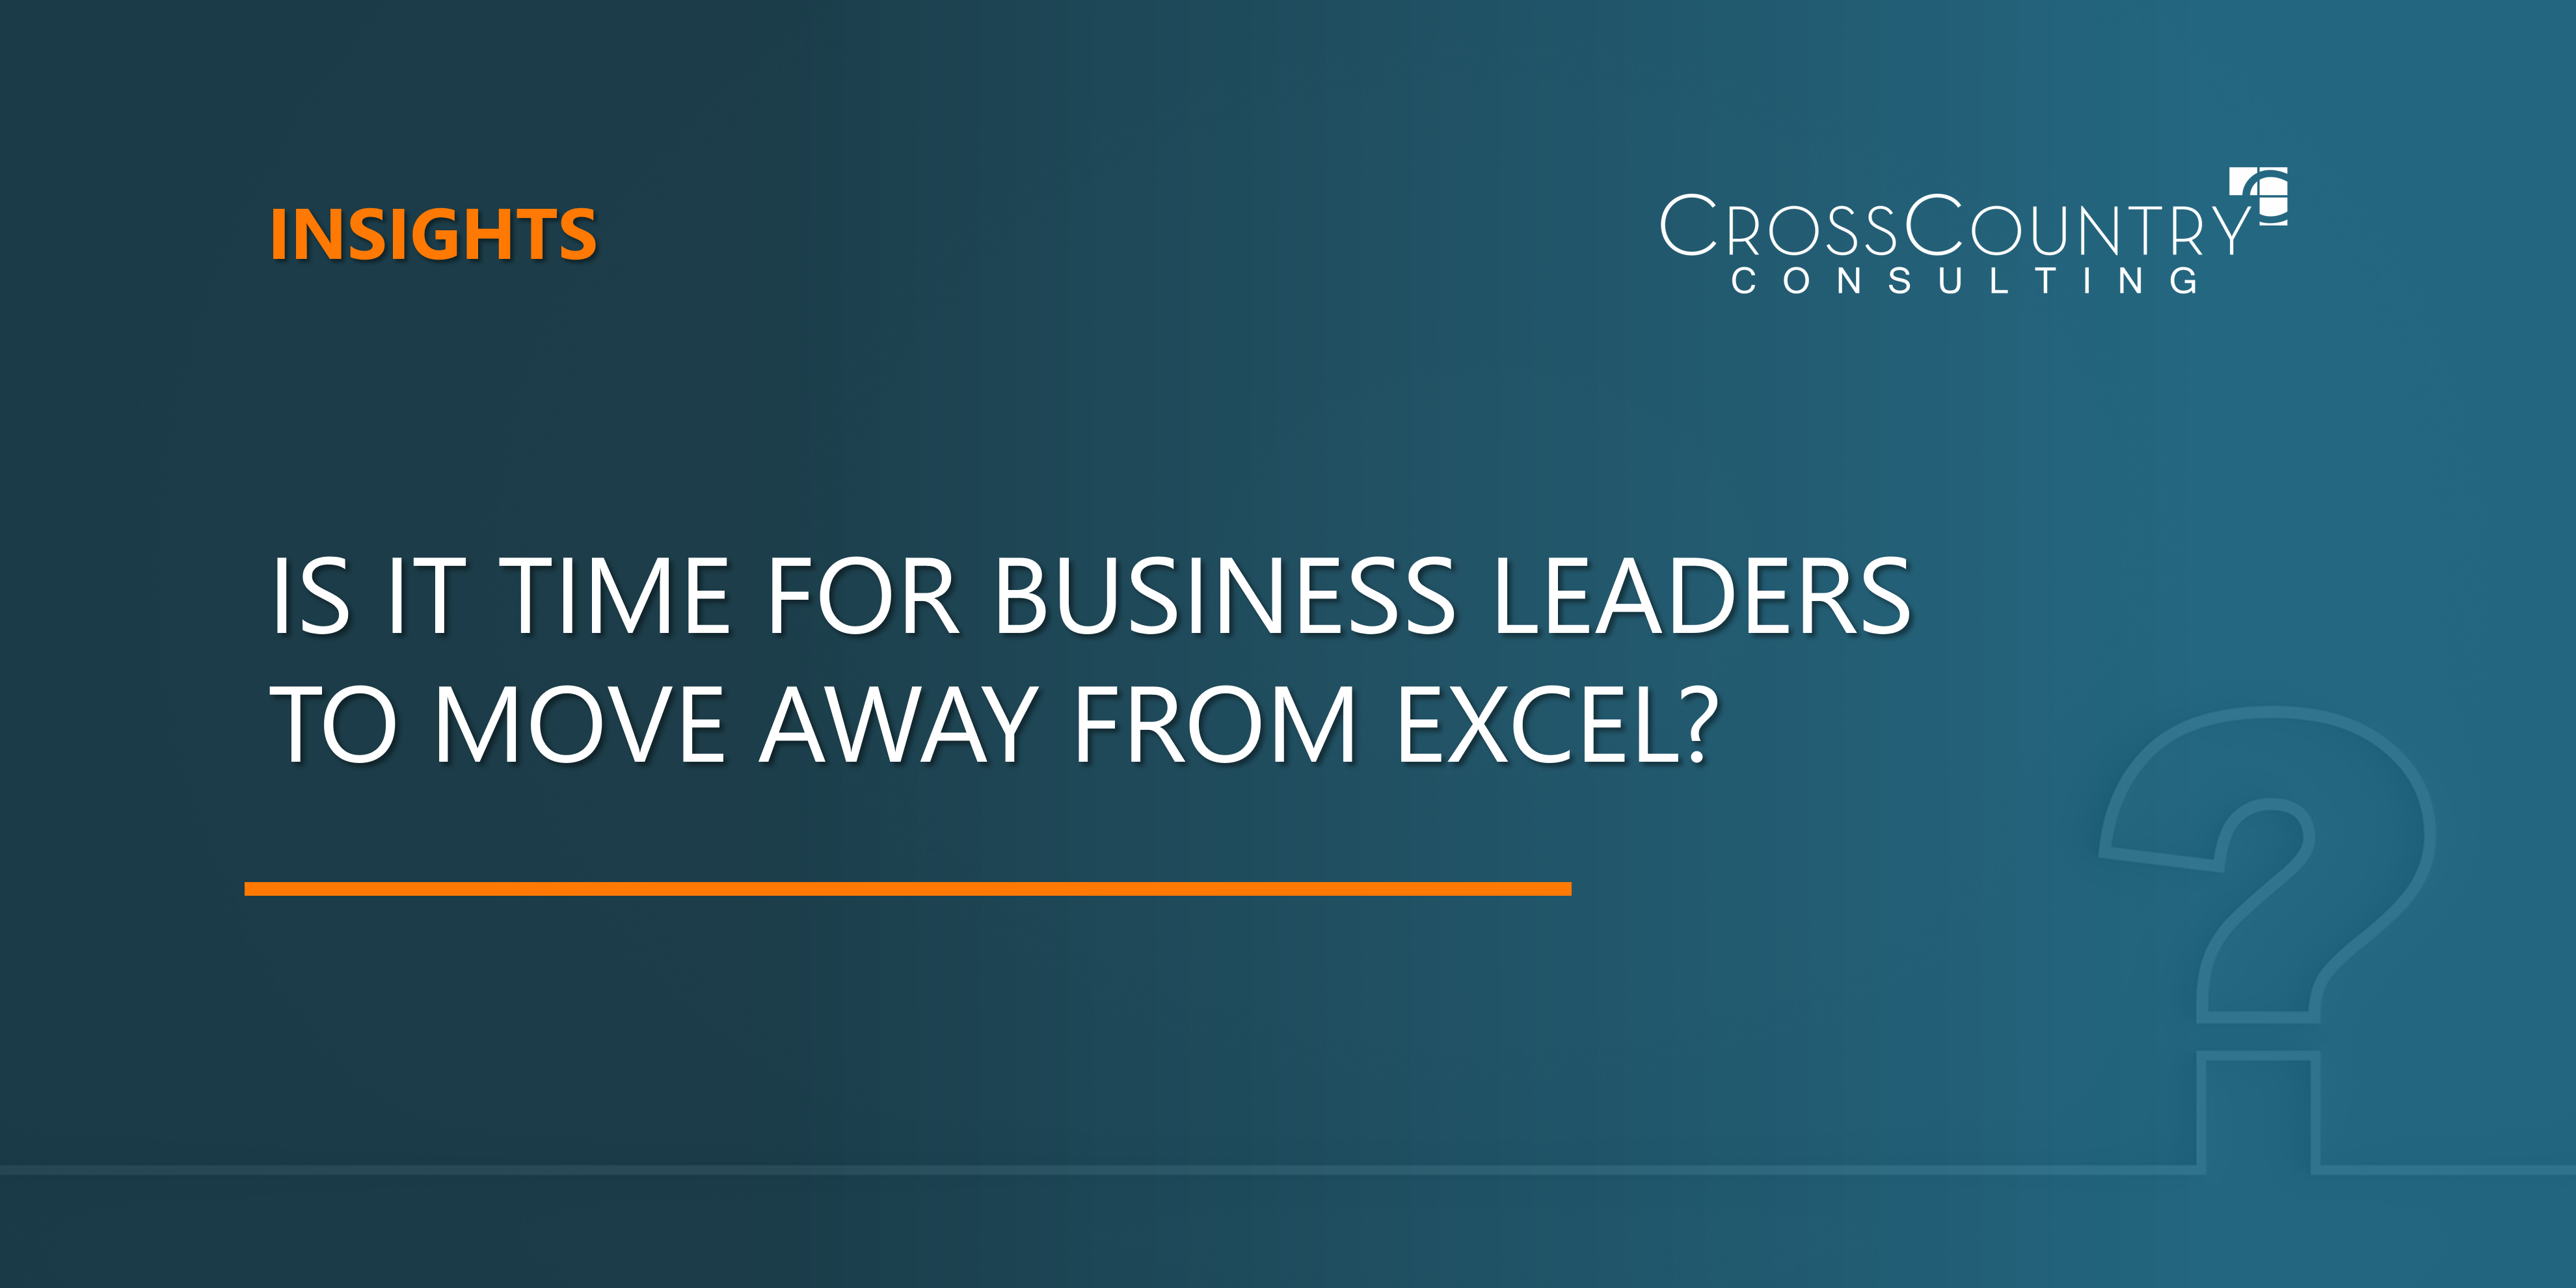 Is It Time for Business Leaders to Move Away from Excel?